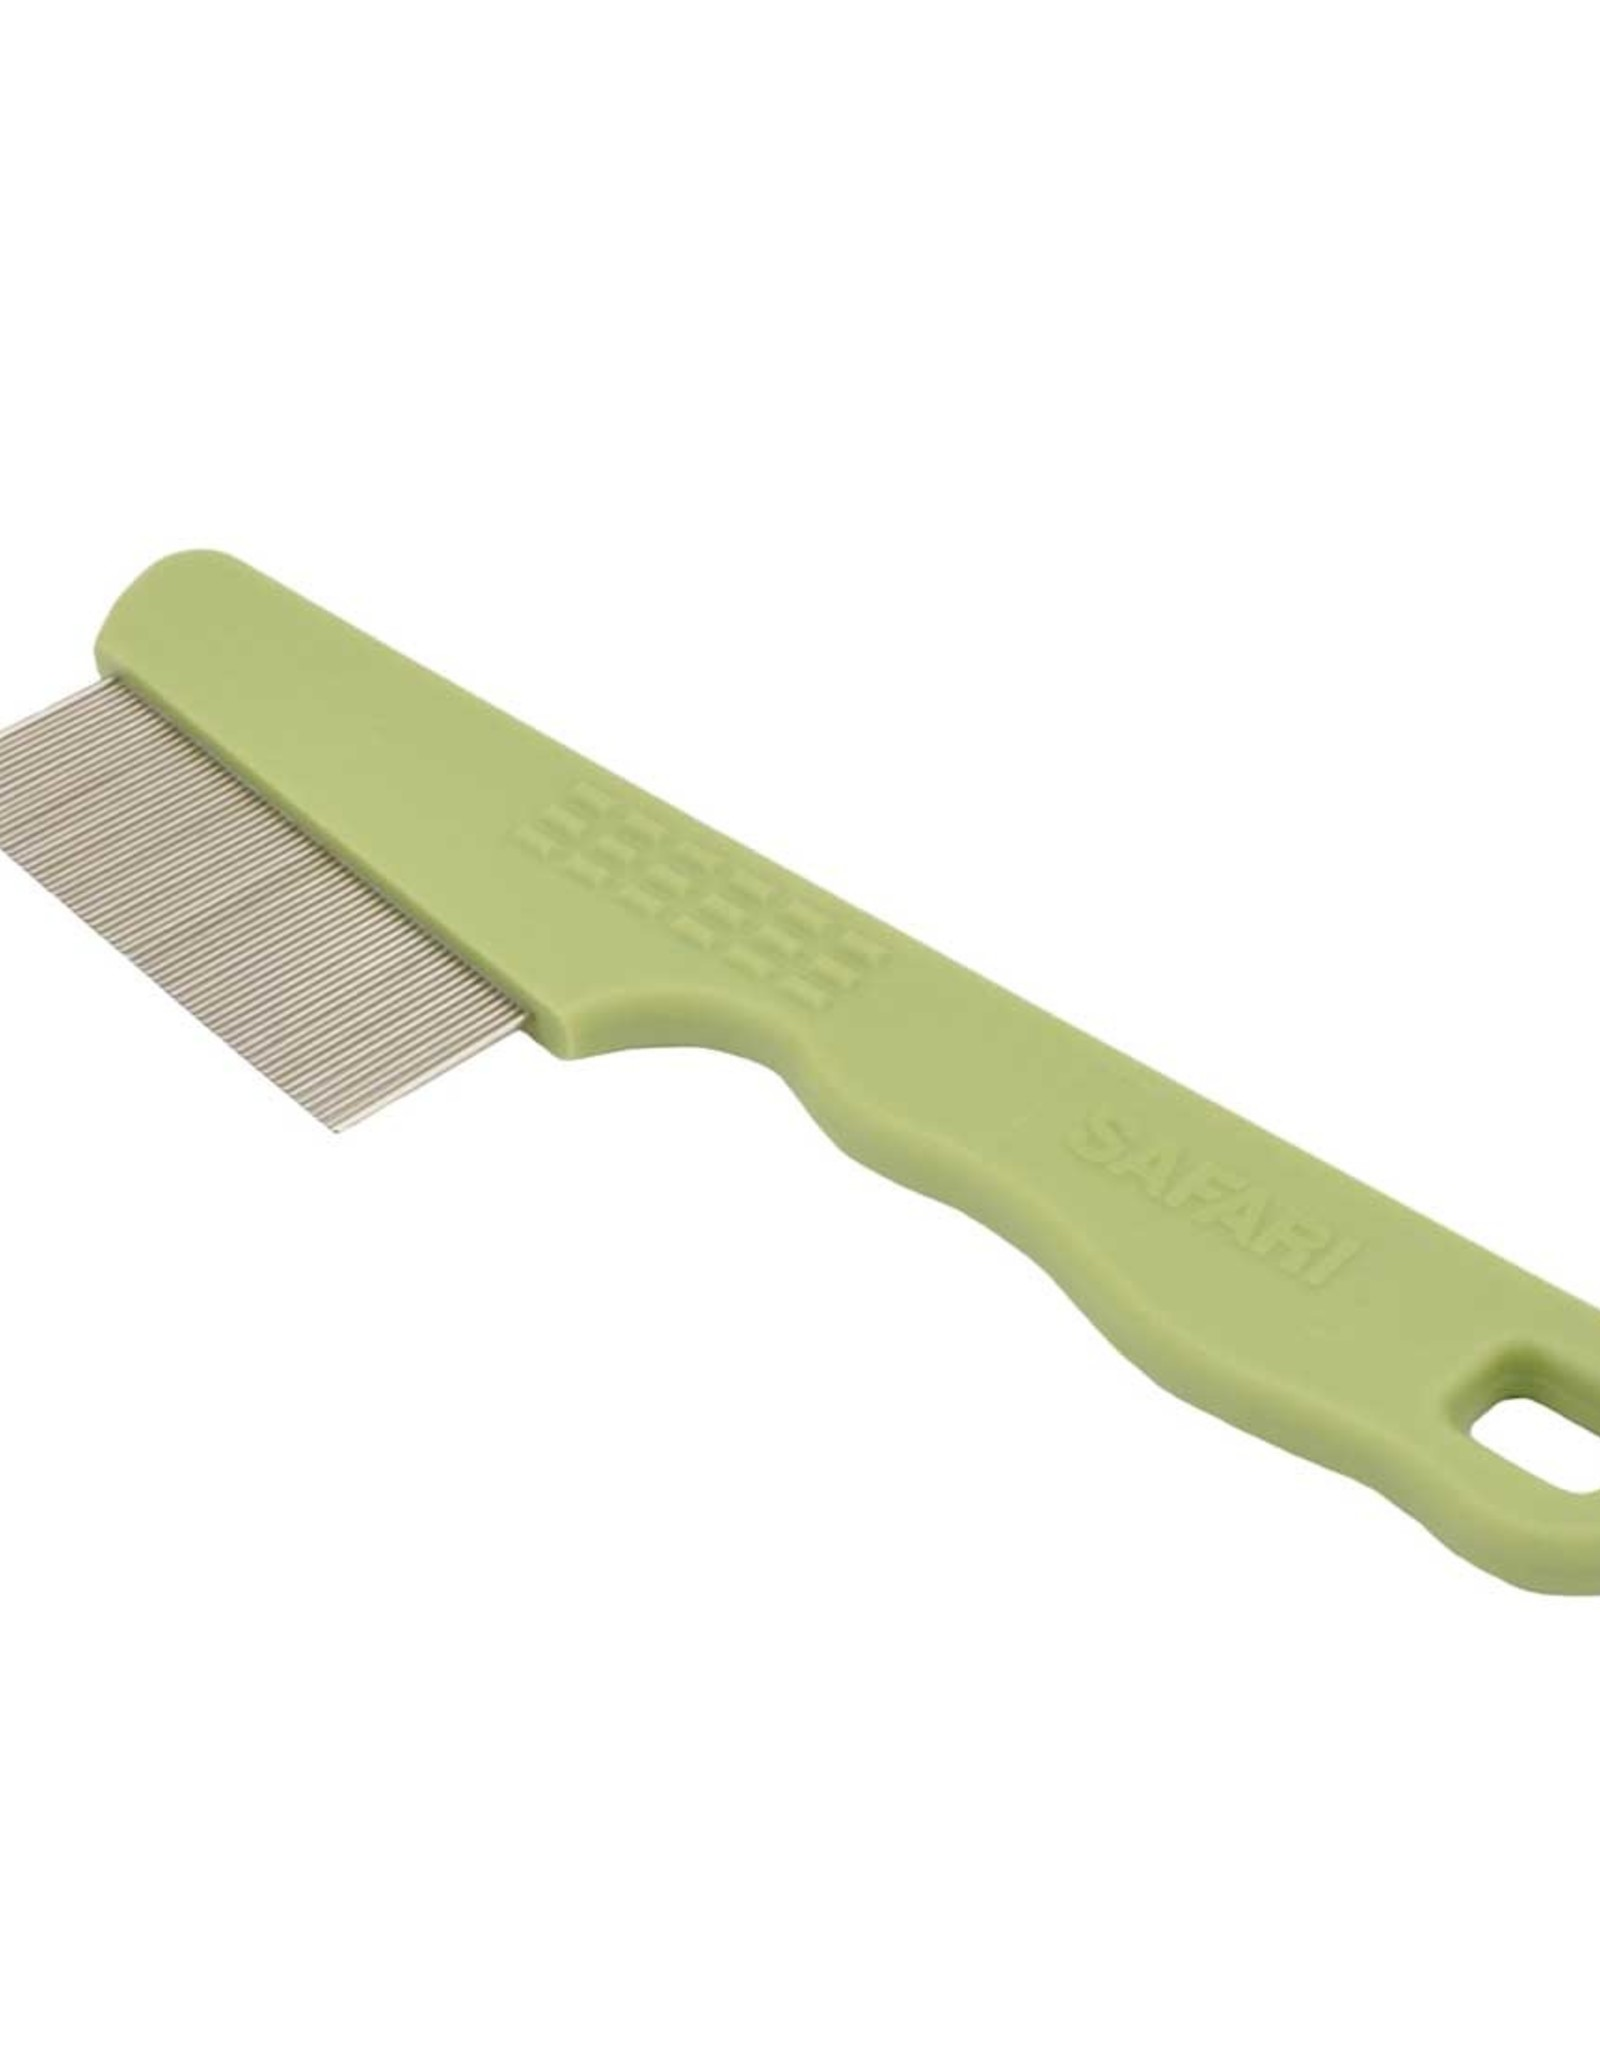 Safari Safari Flea Comb